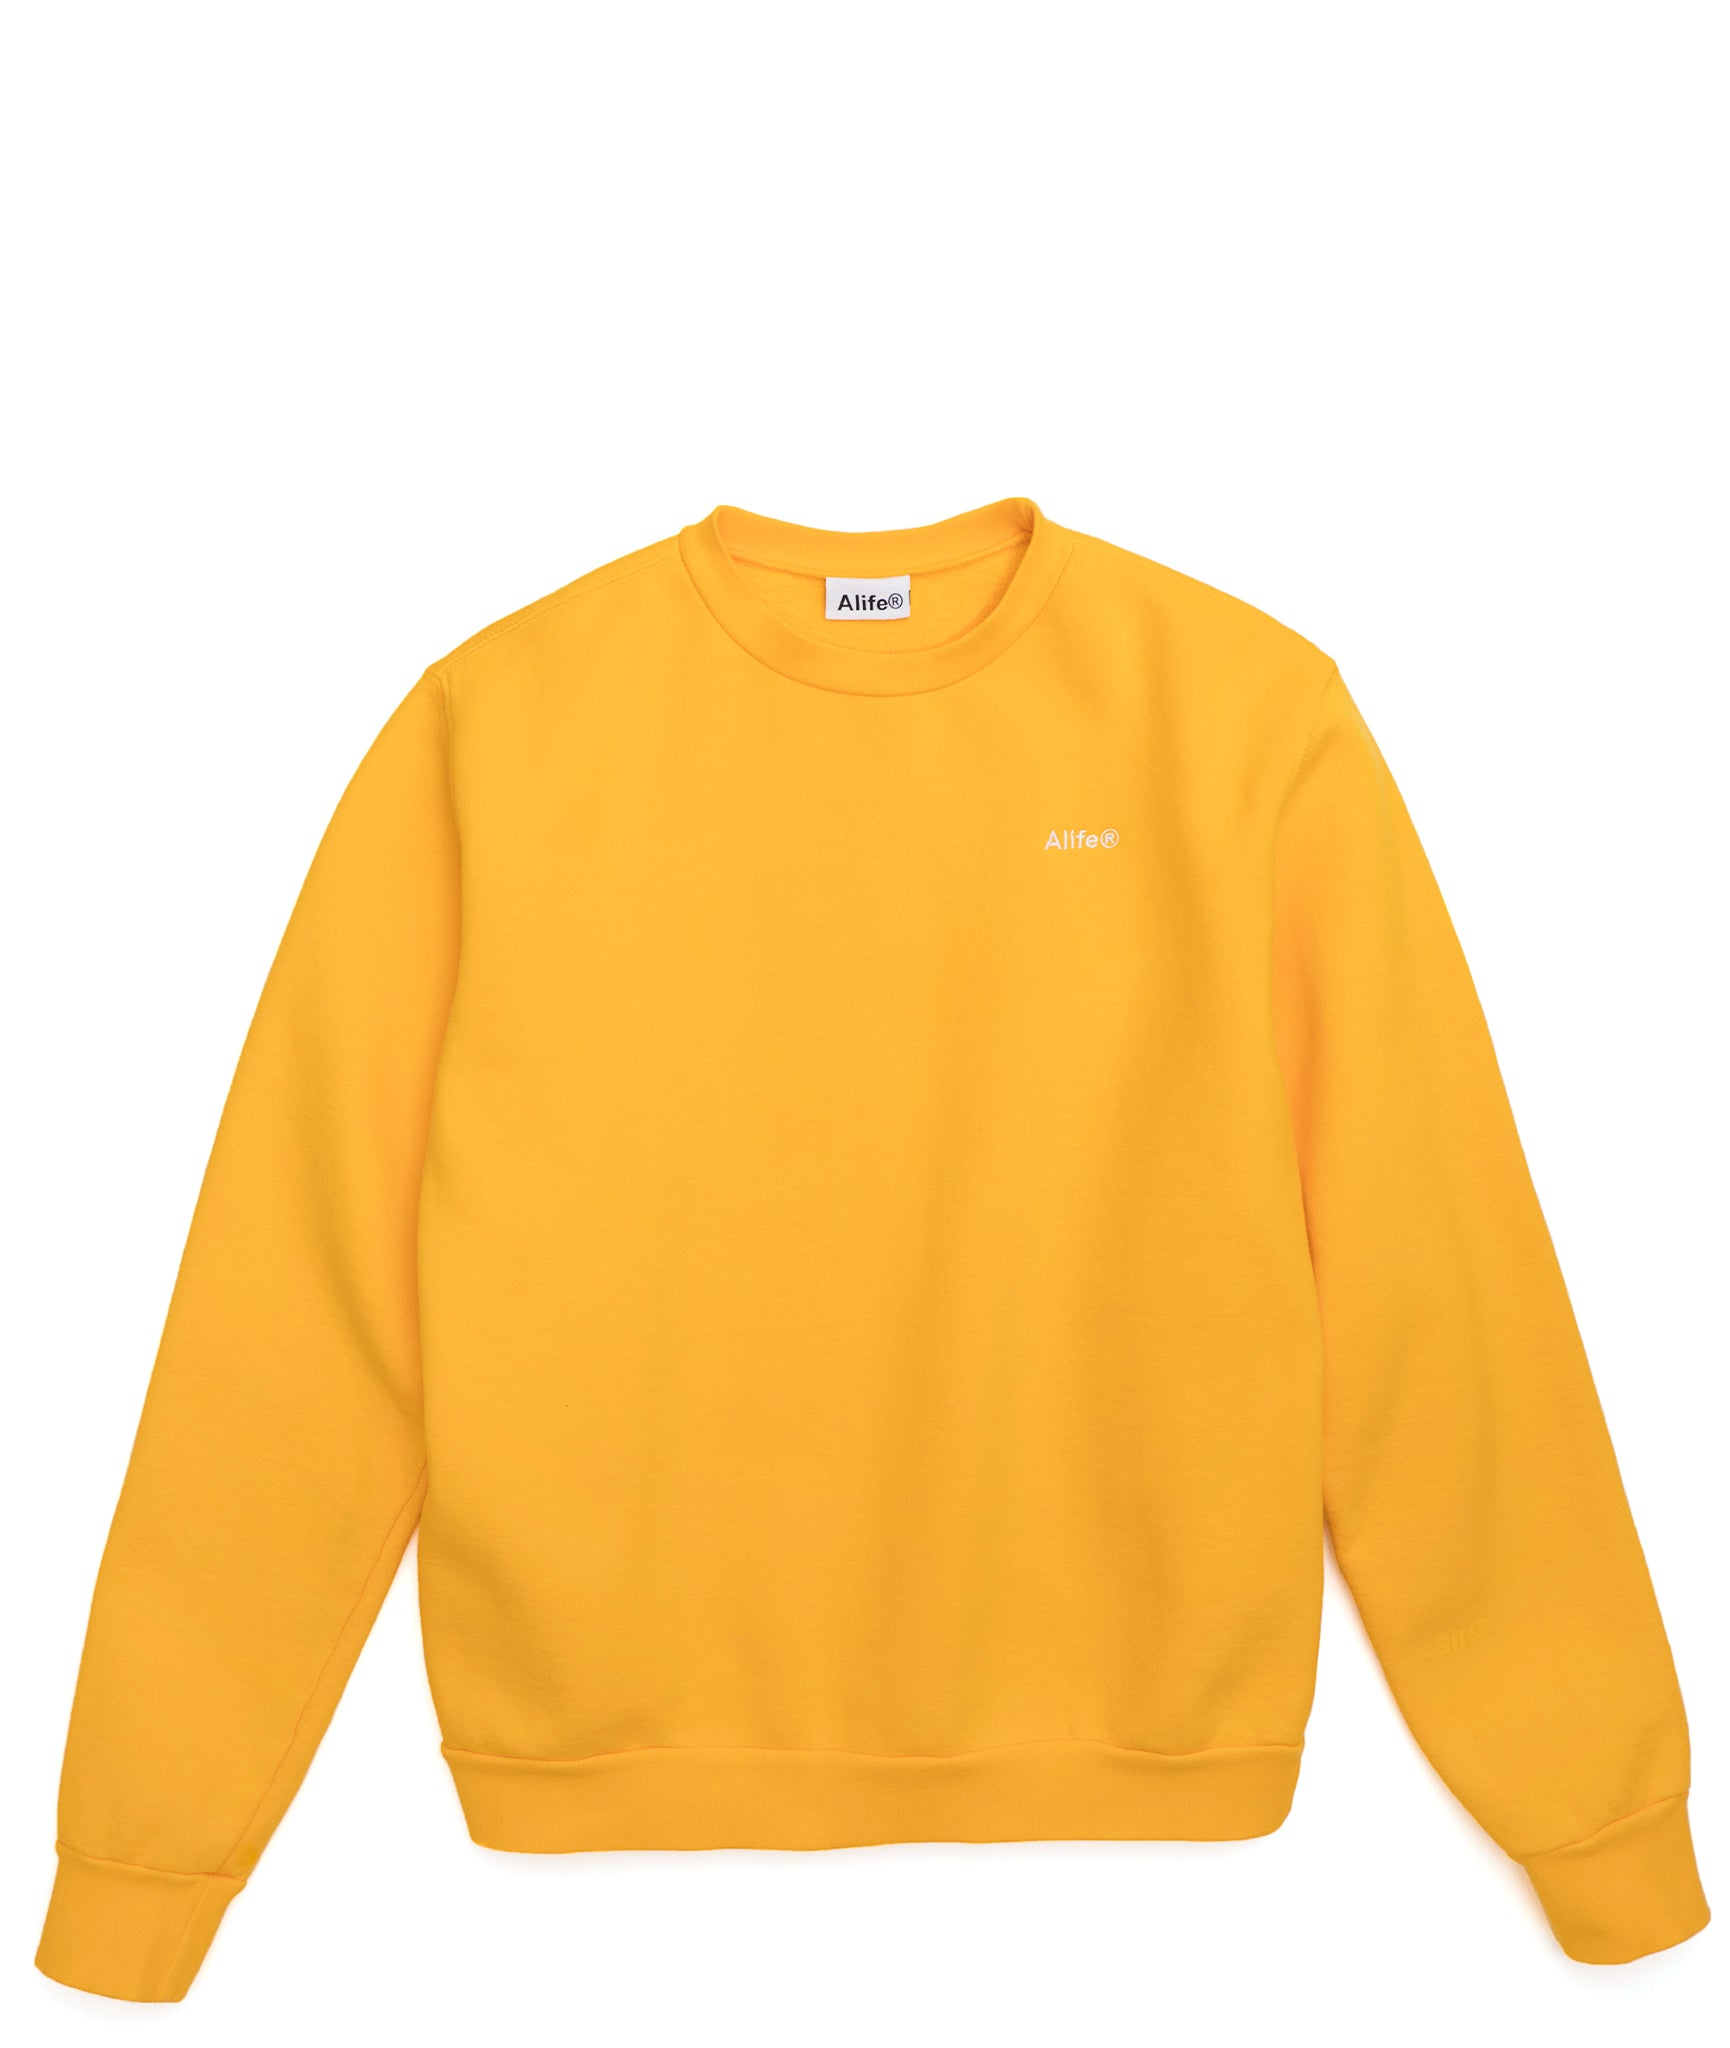 Alife Basics Crewneck in Yellow - Front